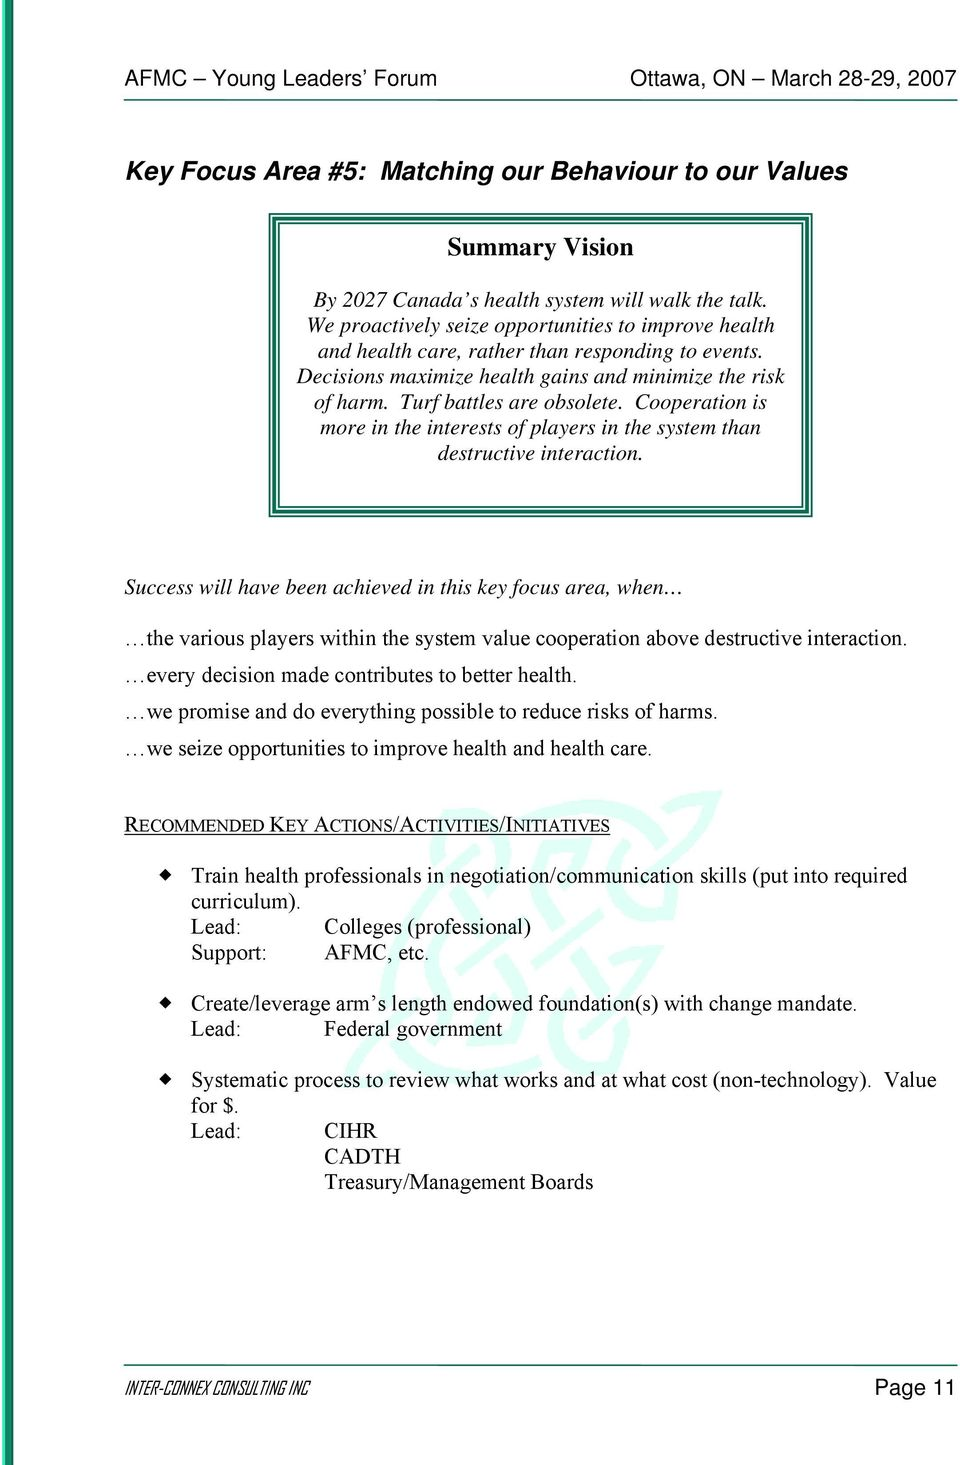 Cooperation is more in the interests of players in the system than destructive interaction.